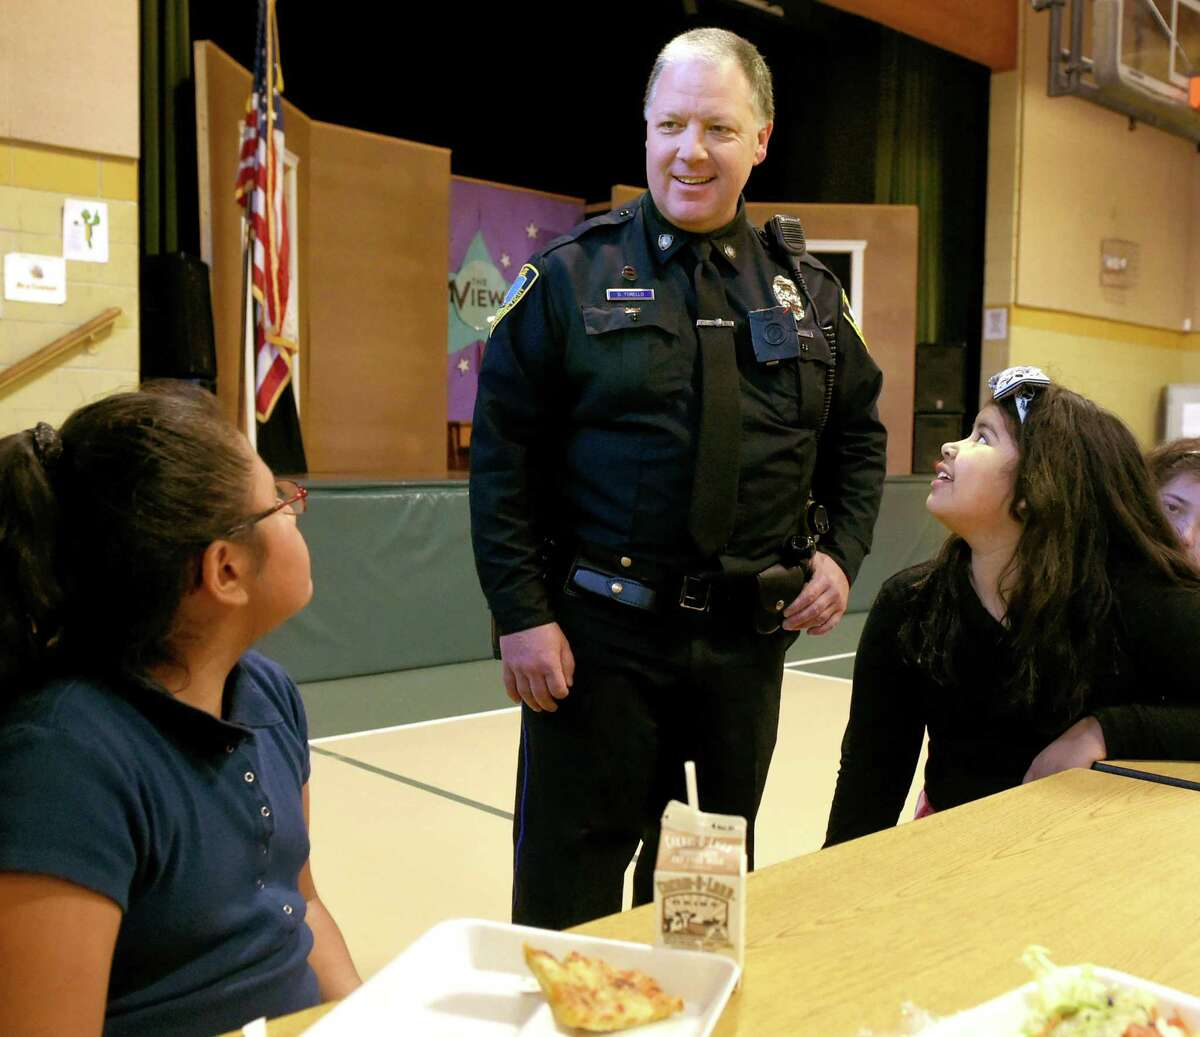 In this file photo, East Haven Police officer Dave Torello, DARE program officer, with Tuttle School fourth graders during lunch in East Haven in 2015.